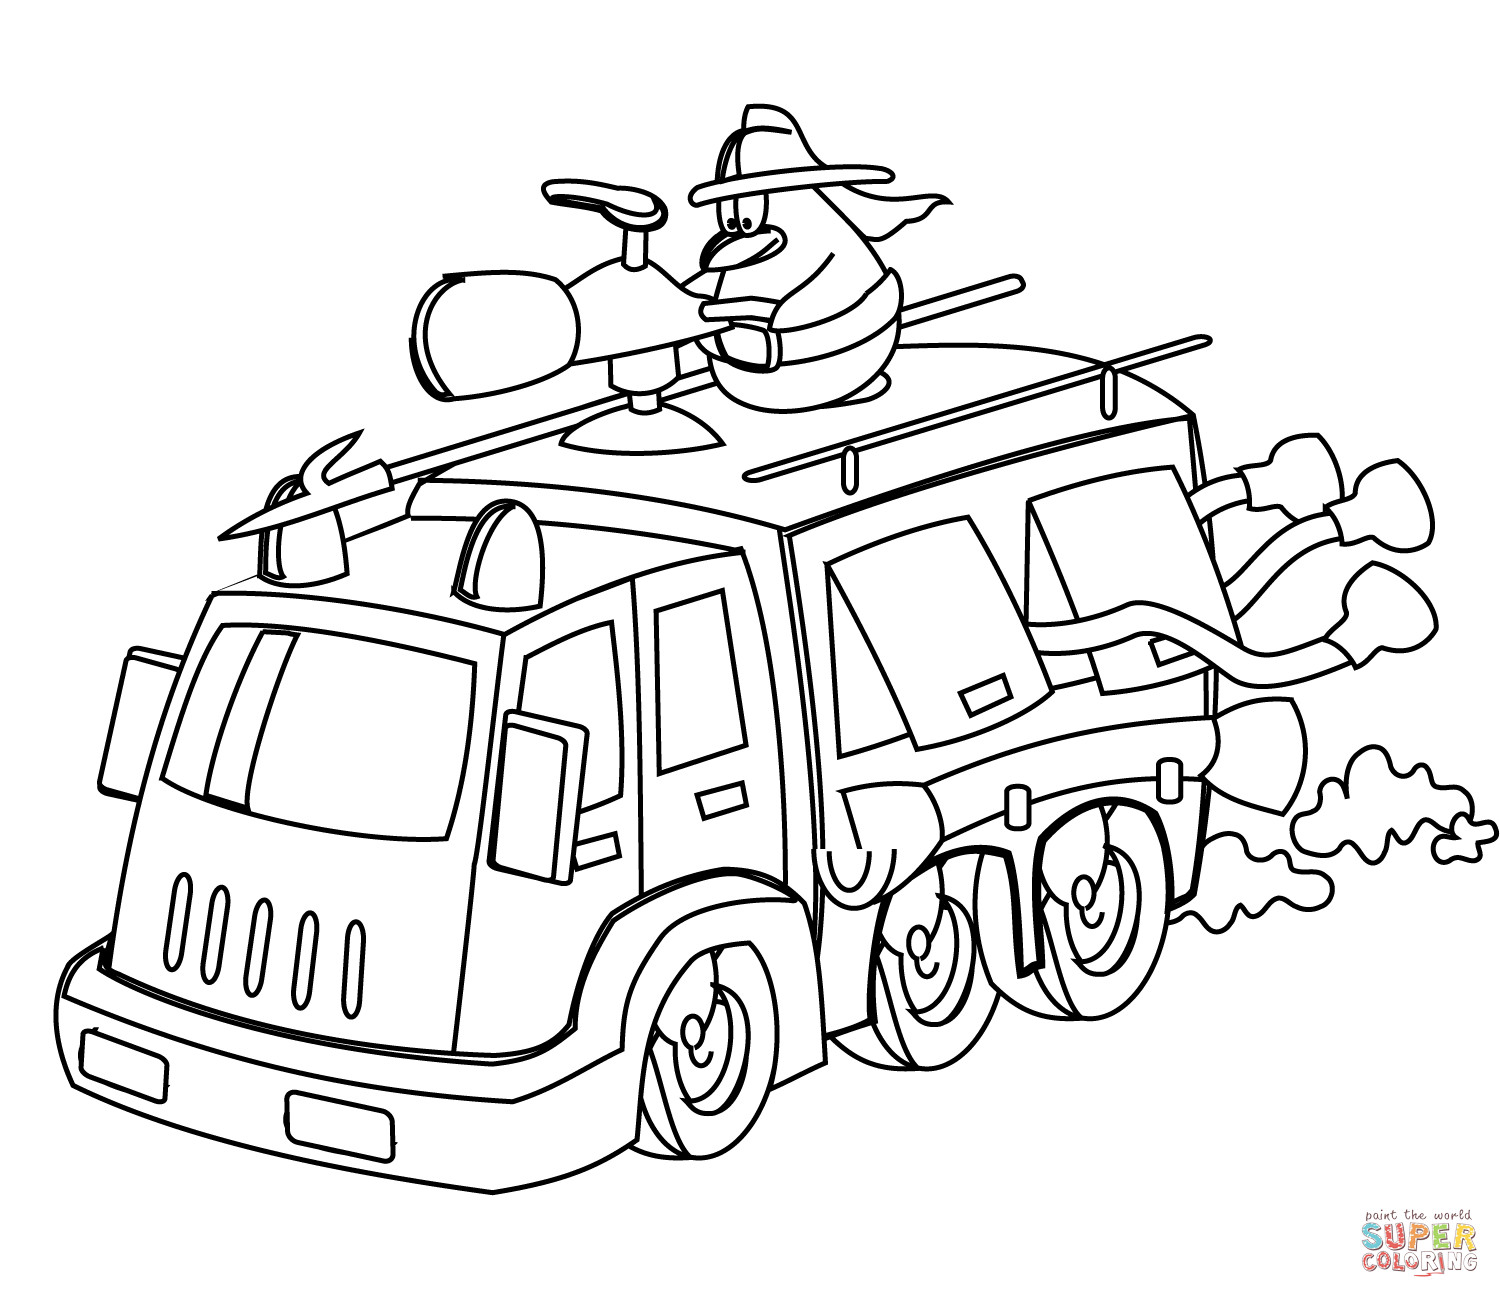 1500x1298 Printable Fire Station Coloring Pages Free Download At Wagashiya